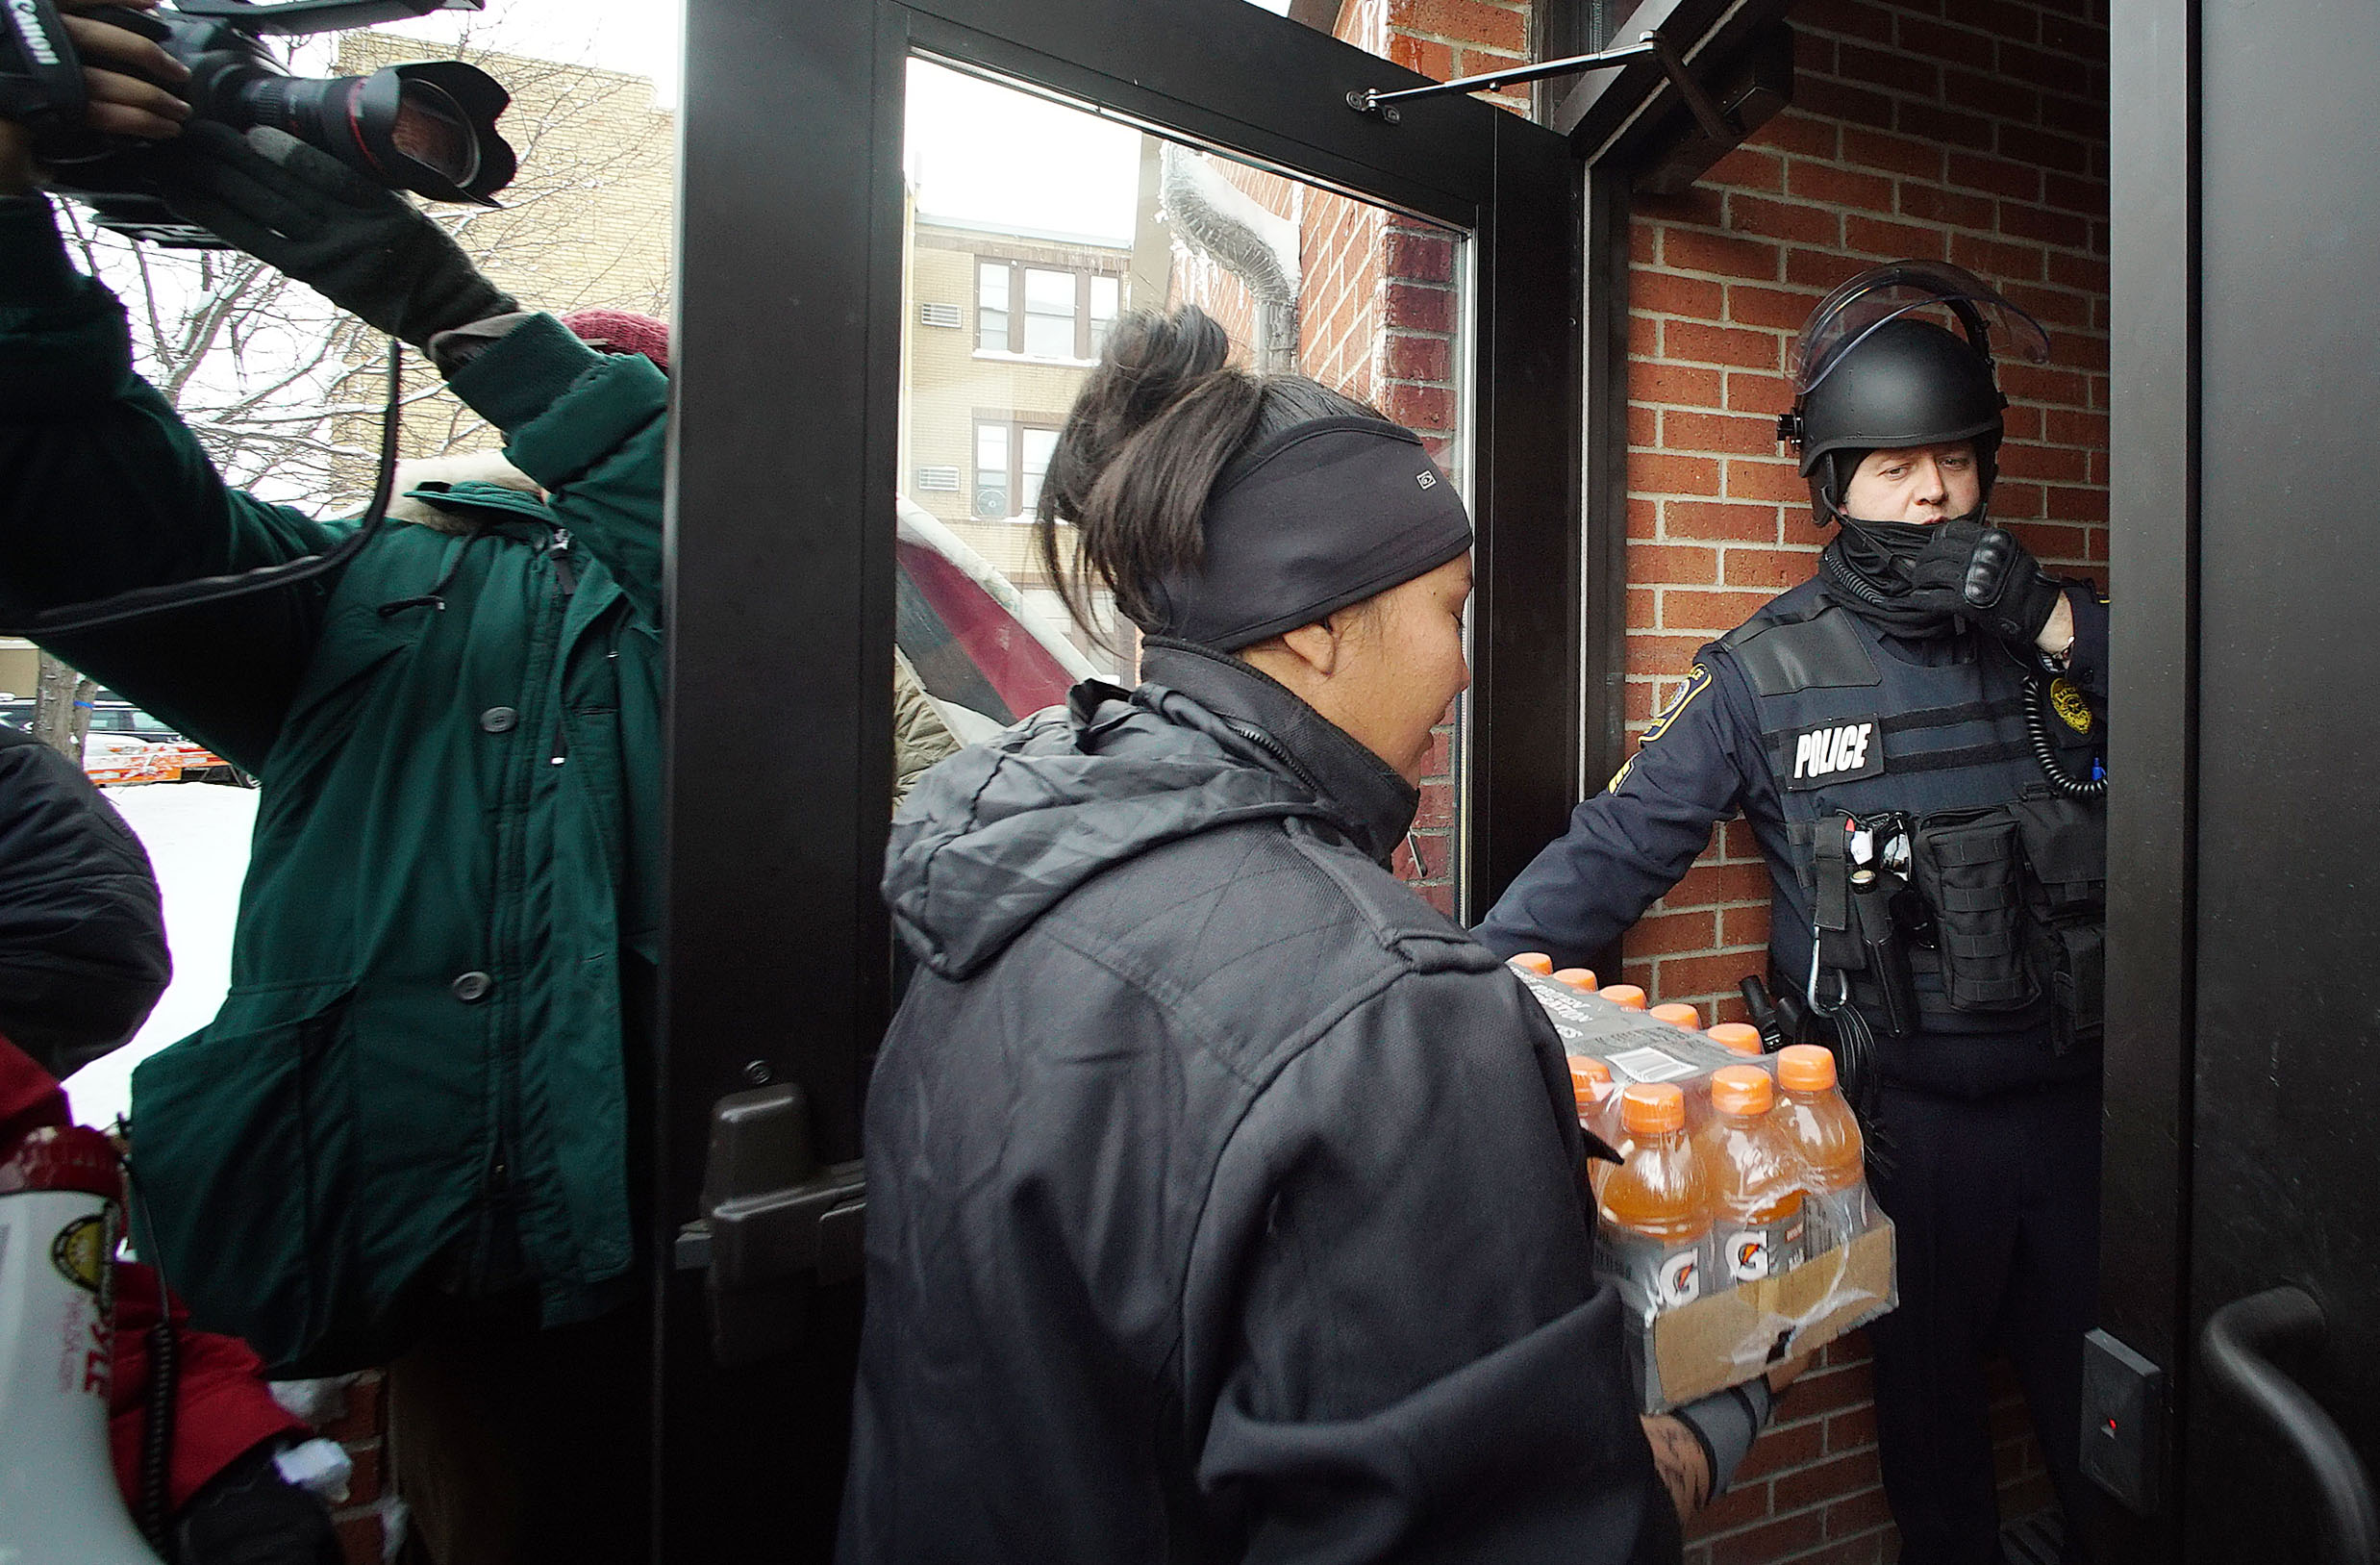 <p>At one point the Morton County Sheriff's Department said it would cut off supplies to the encampment, prompting a party of protesters to drive an hour to the sheriff's office in Mandan and deliver their ownsupplies to the officers.</p>